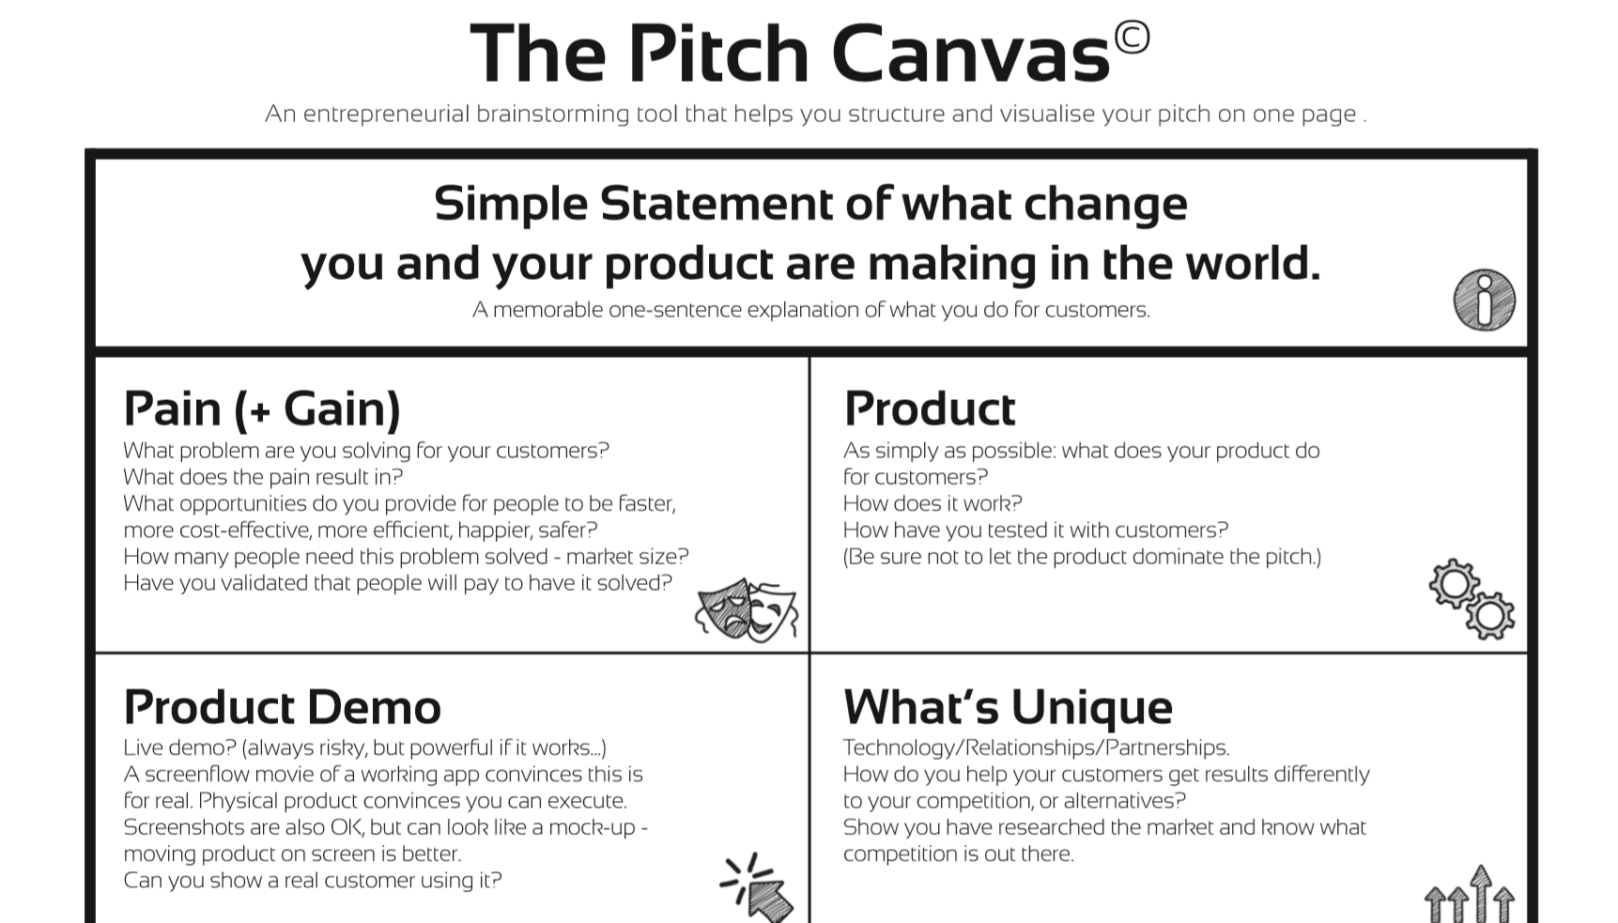 The Pitch Canvas